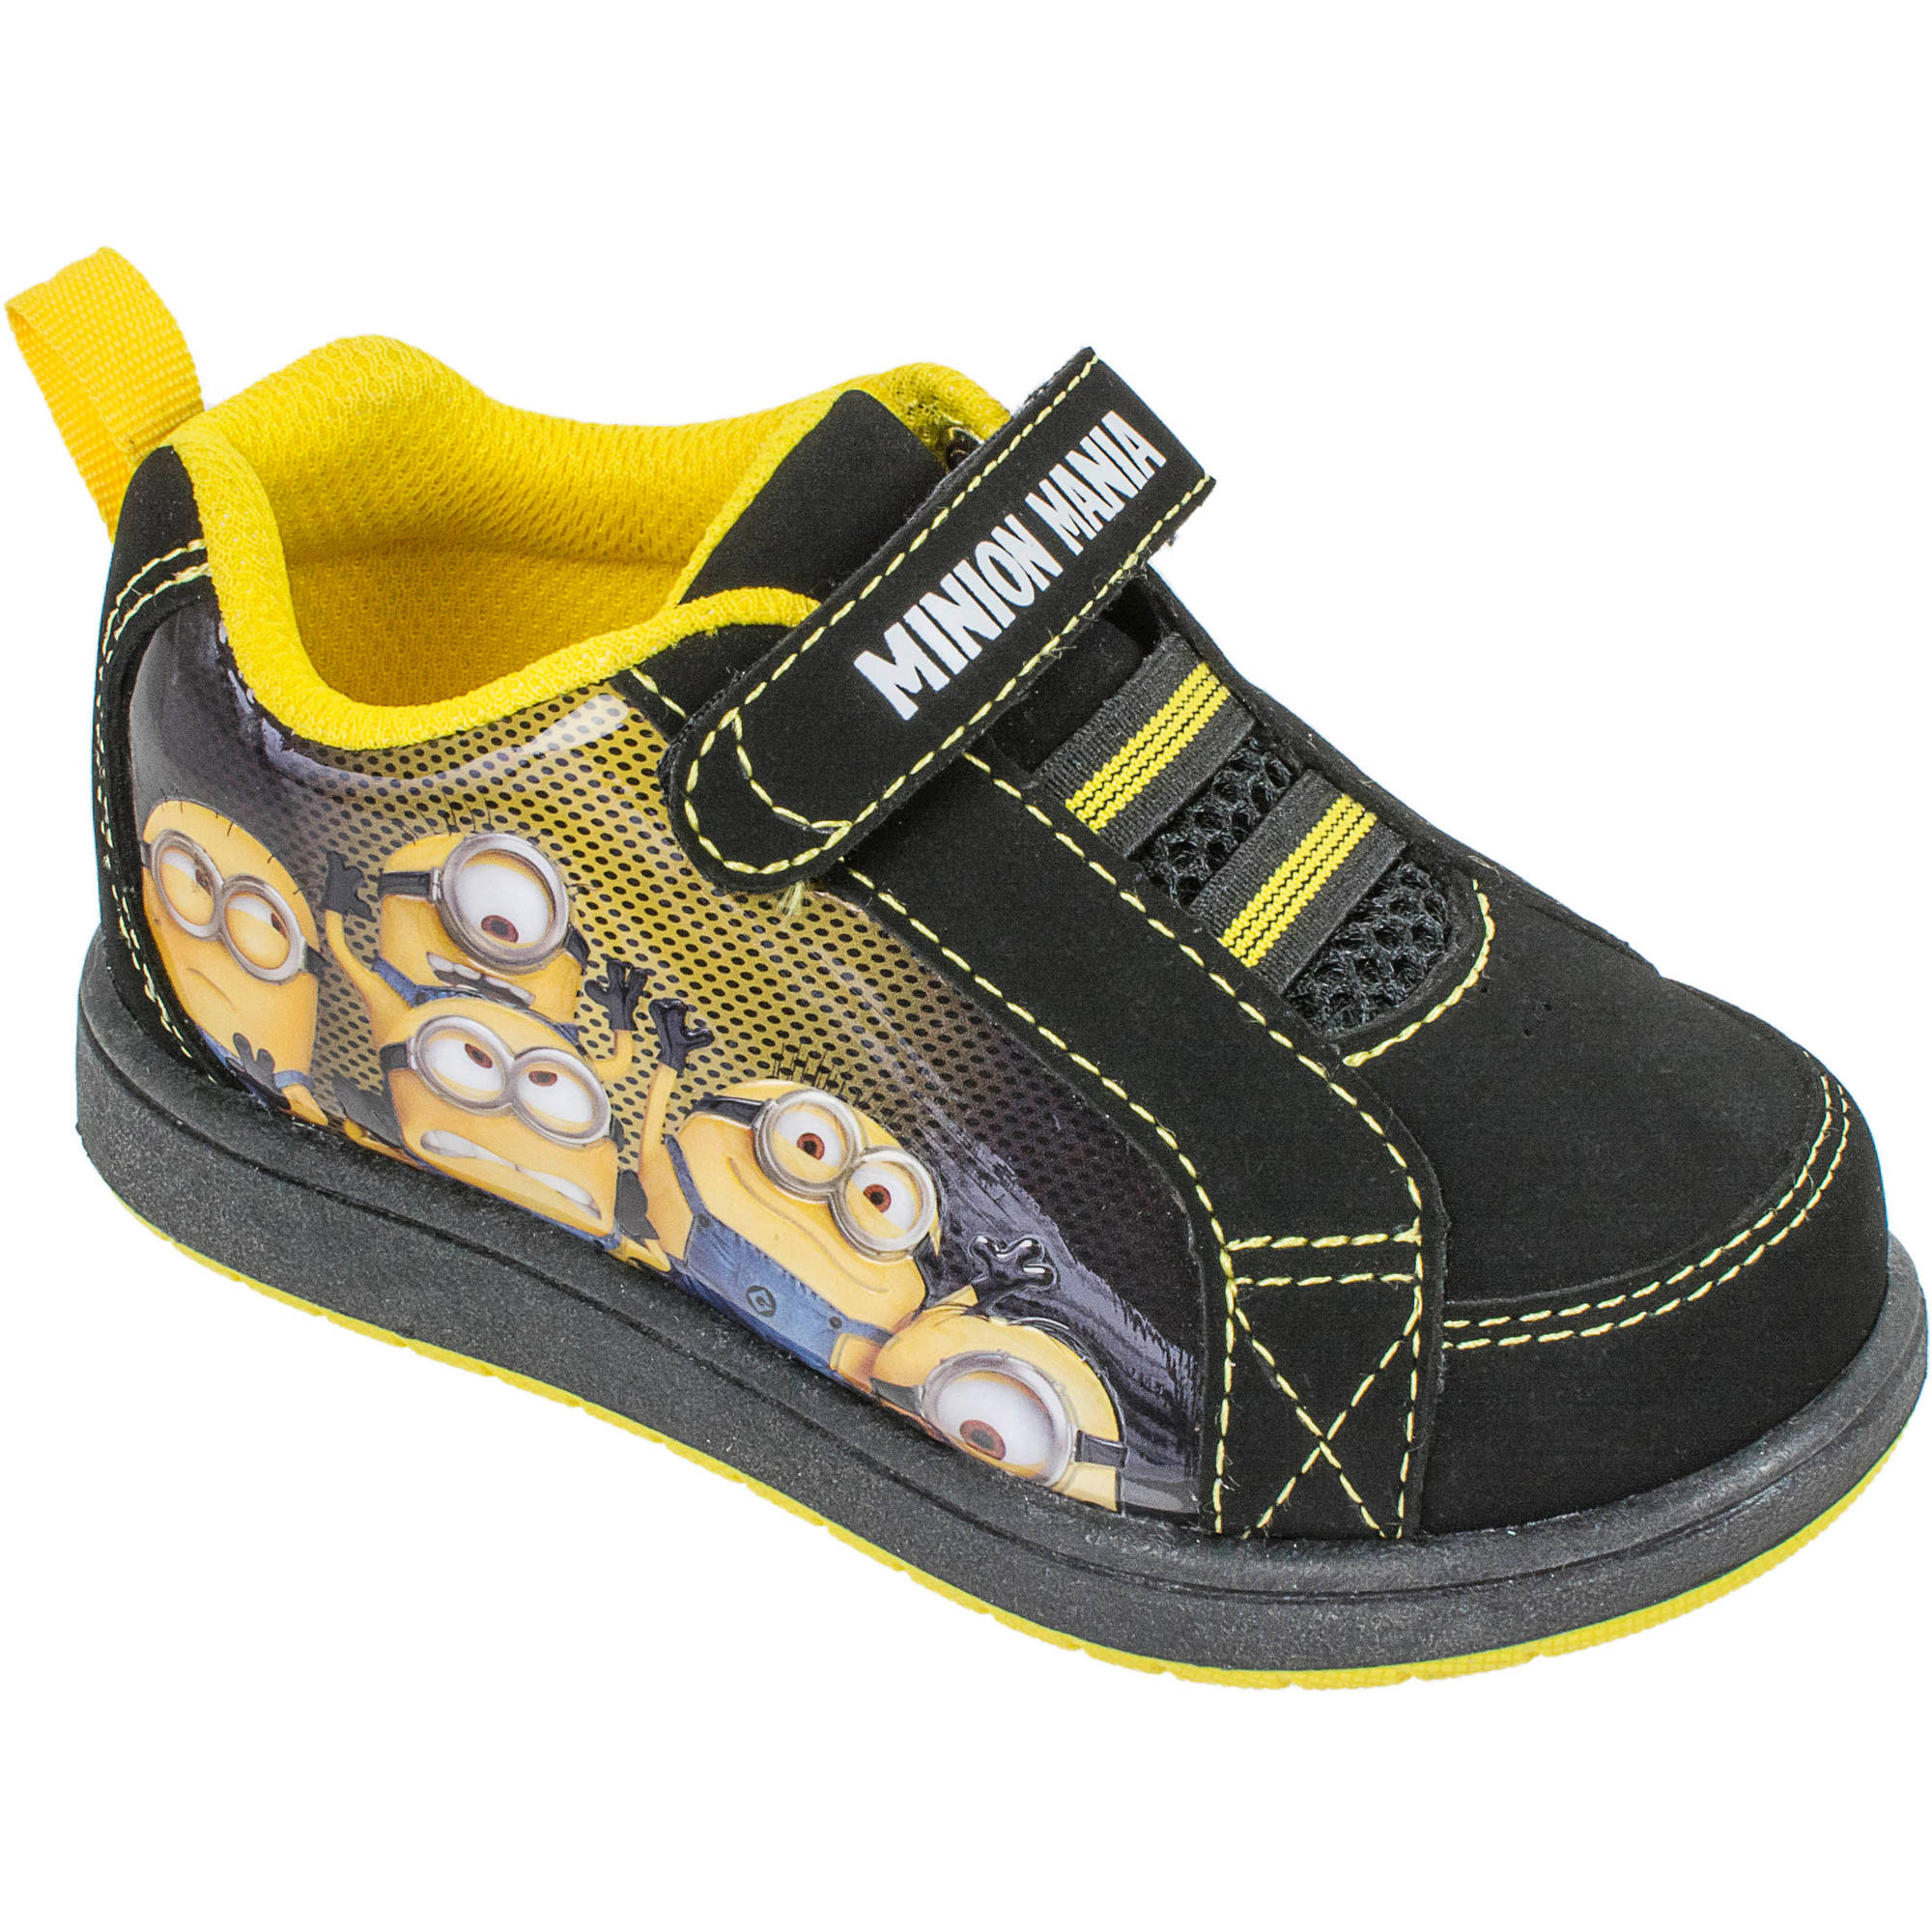 Minions Toddler Boys' Athletic Running Shoe